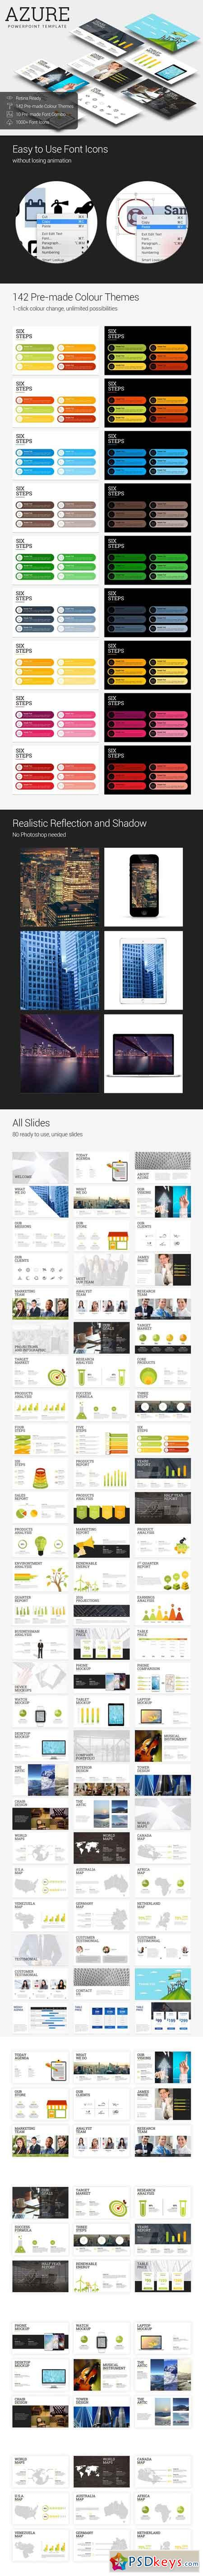 Azure - PowerPoint Template 686297